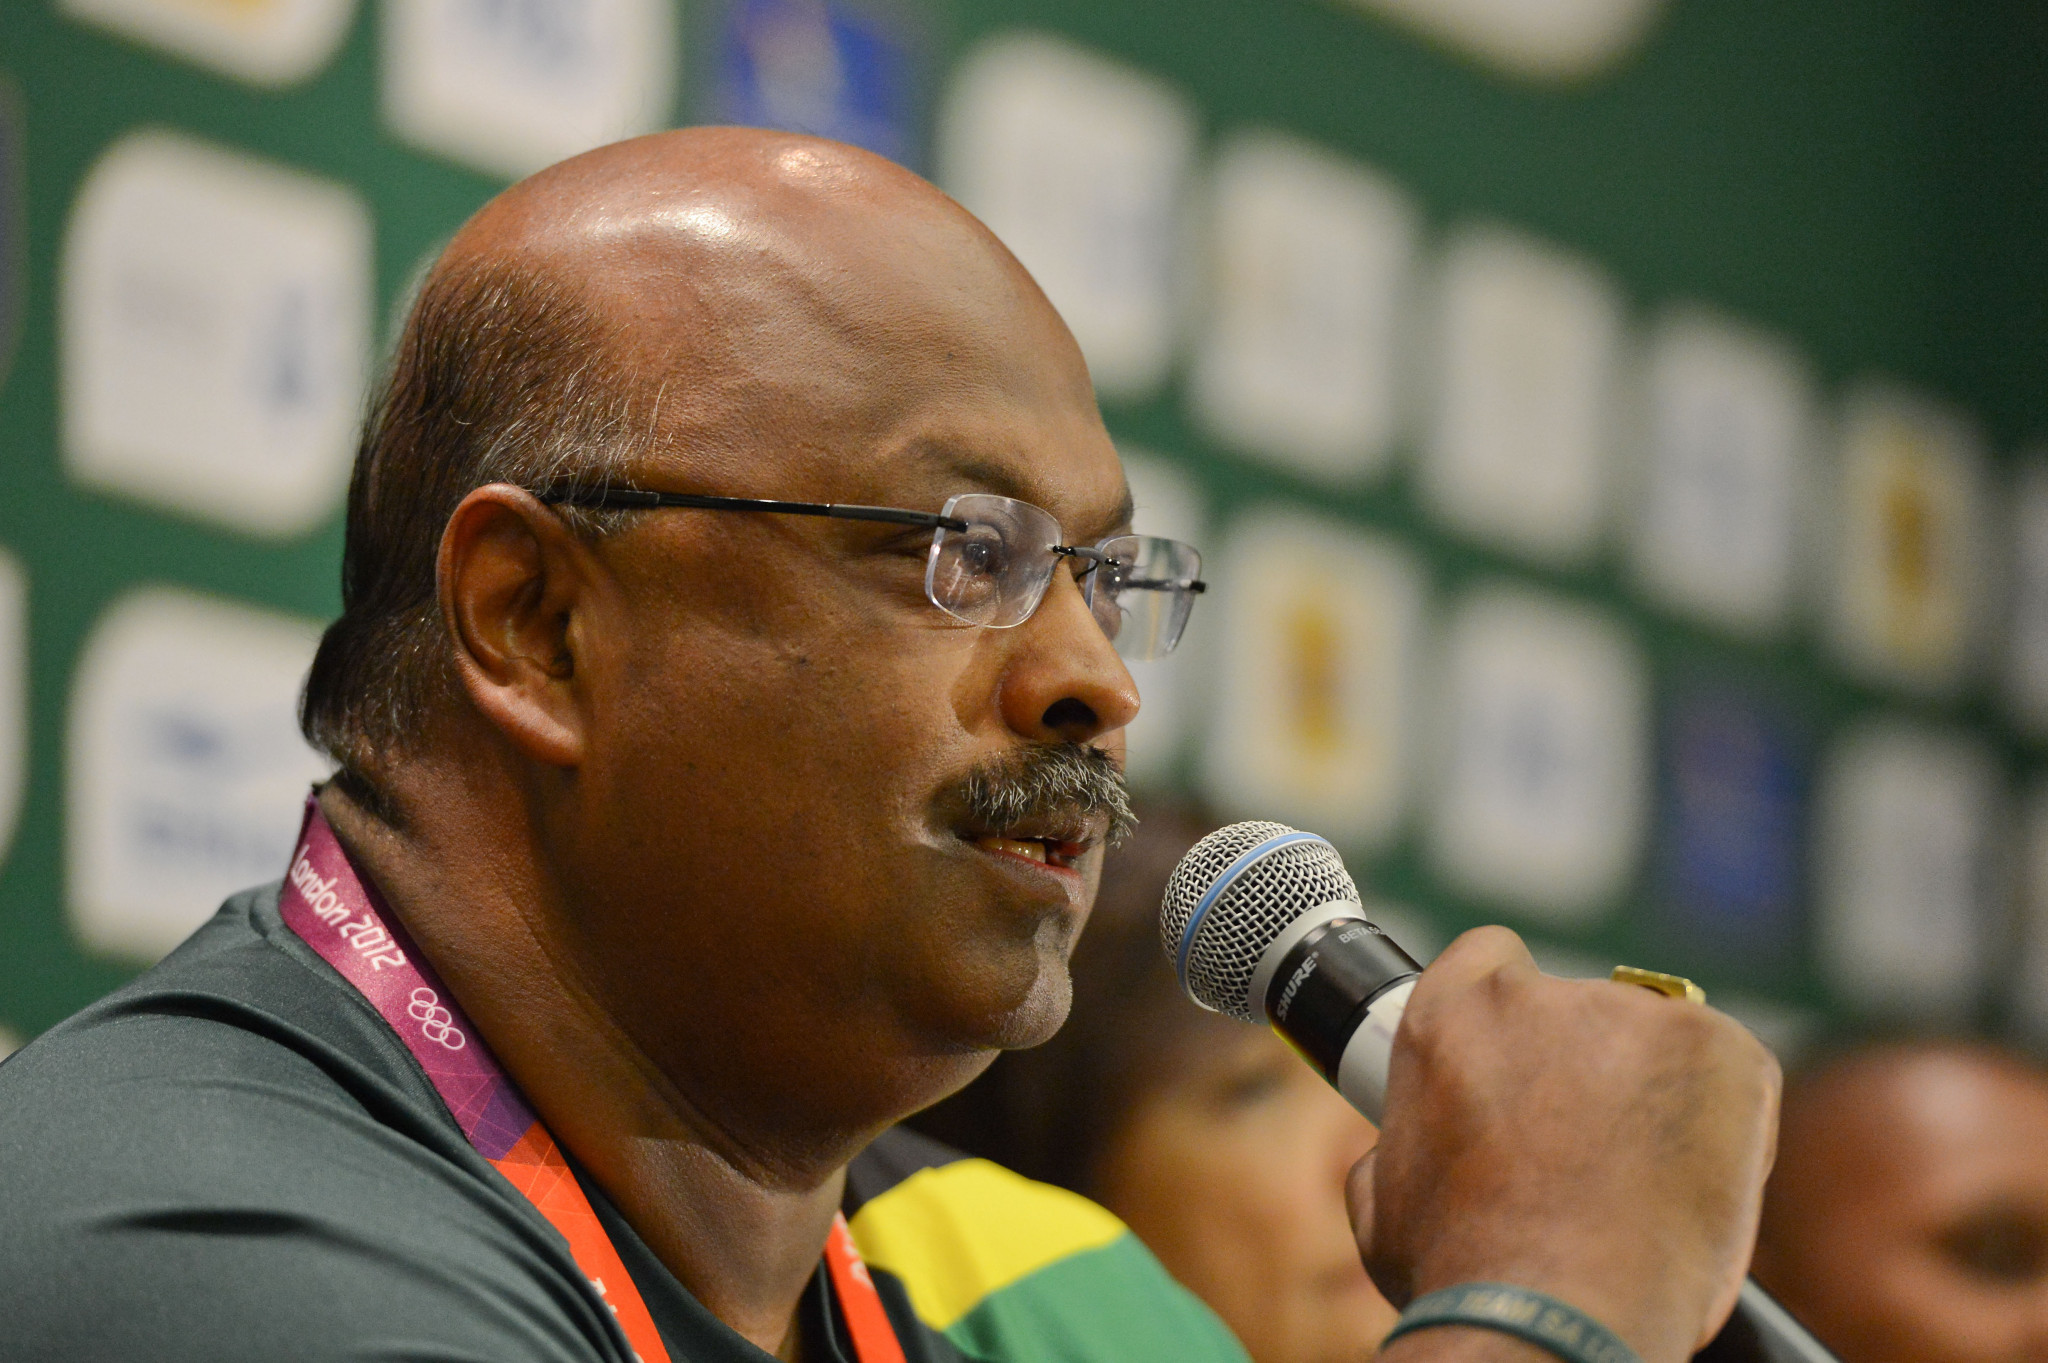 Sacked SASCOC officials allege conflicts of interest, racism and violations of constitution